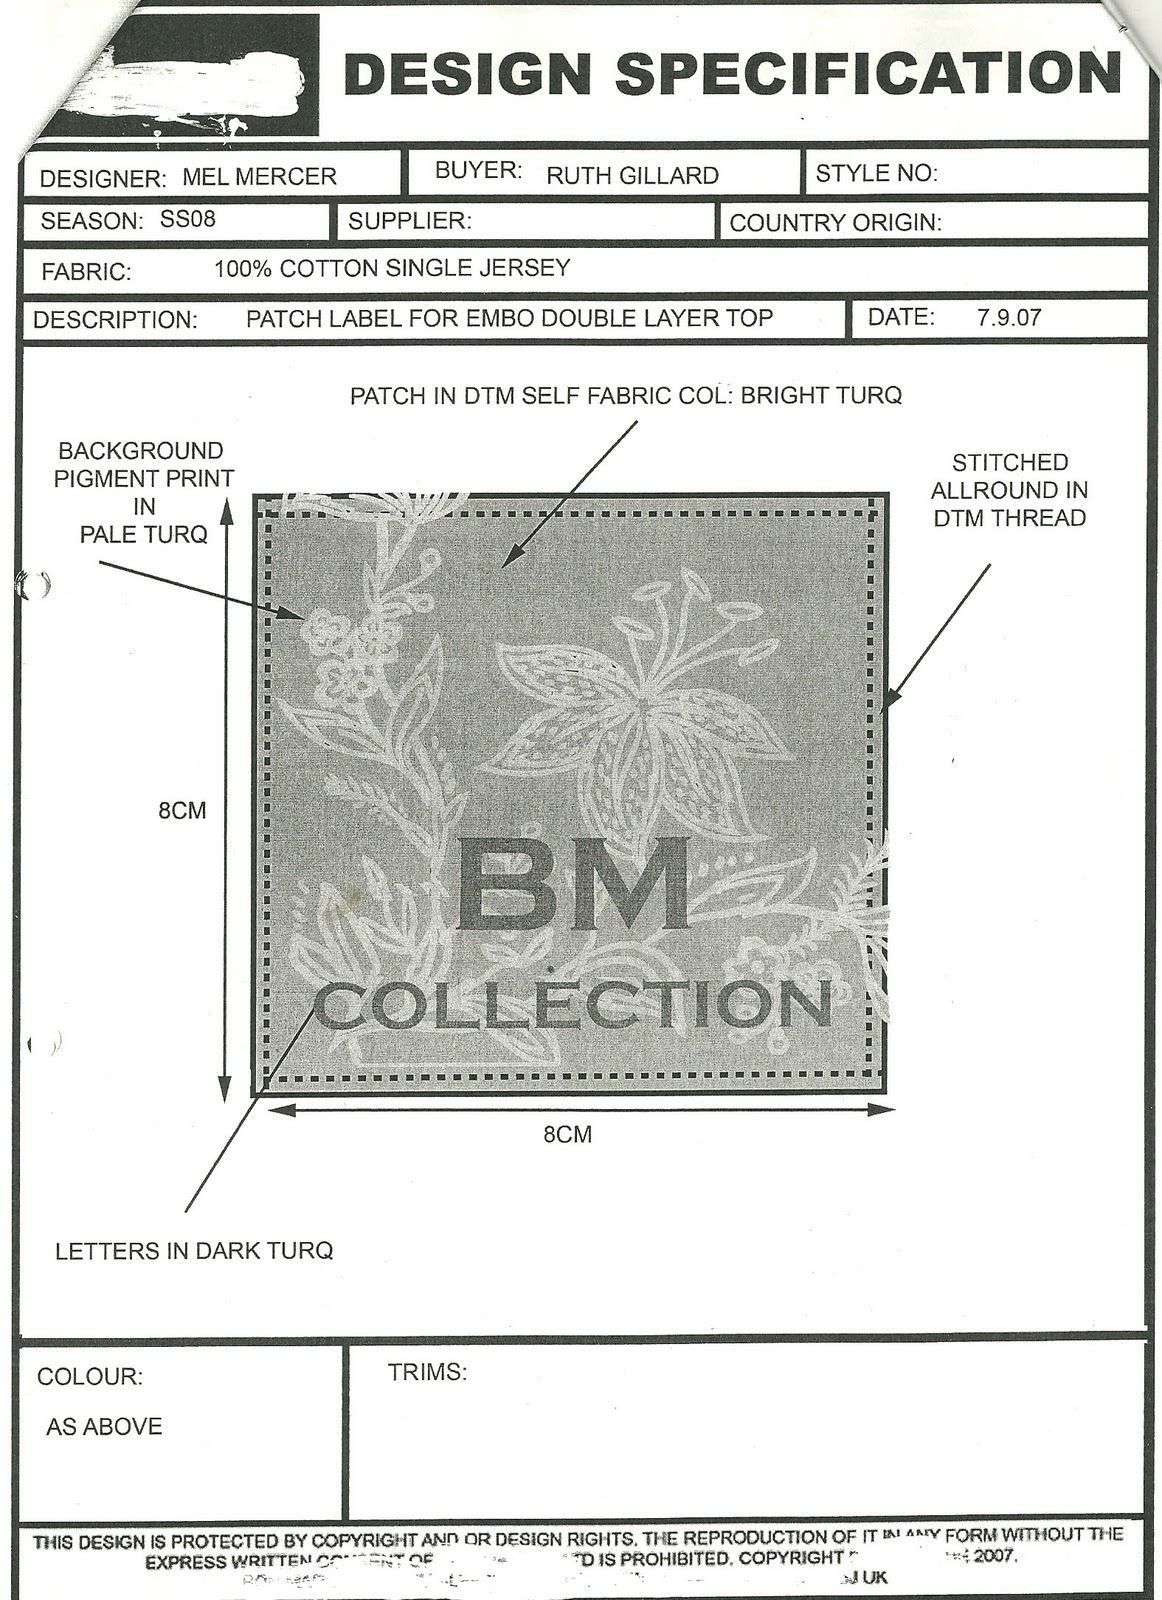 Charming Technical Design Specification Template Contemporary ...